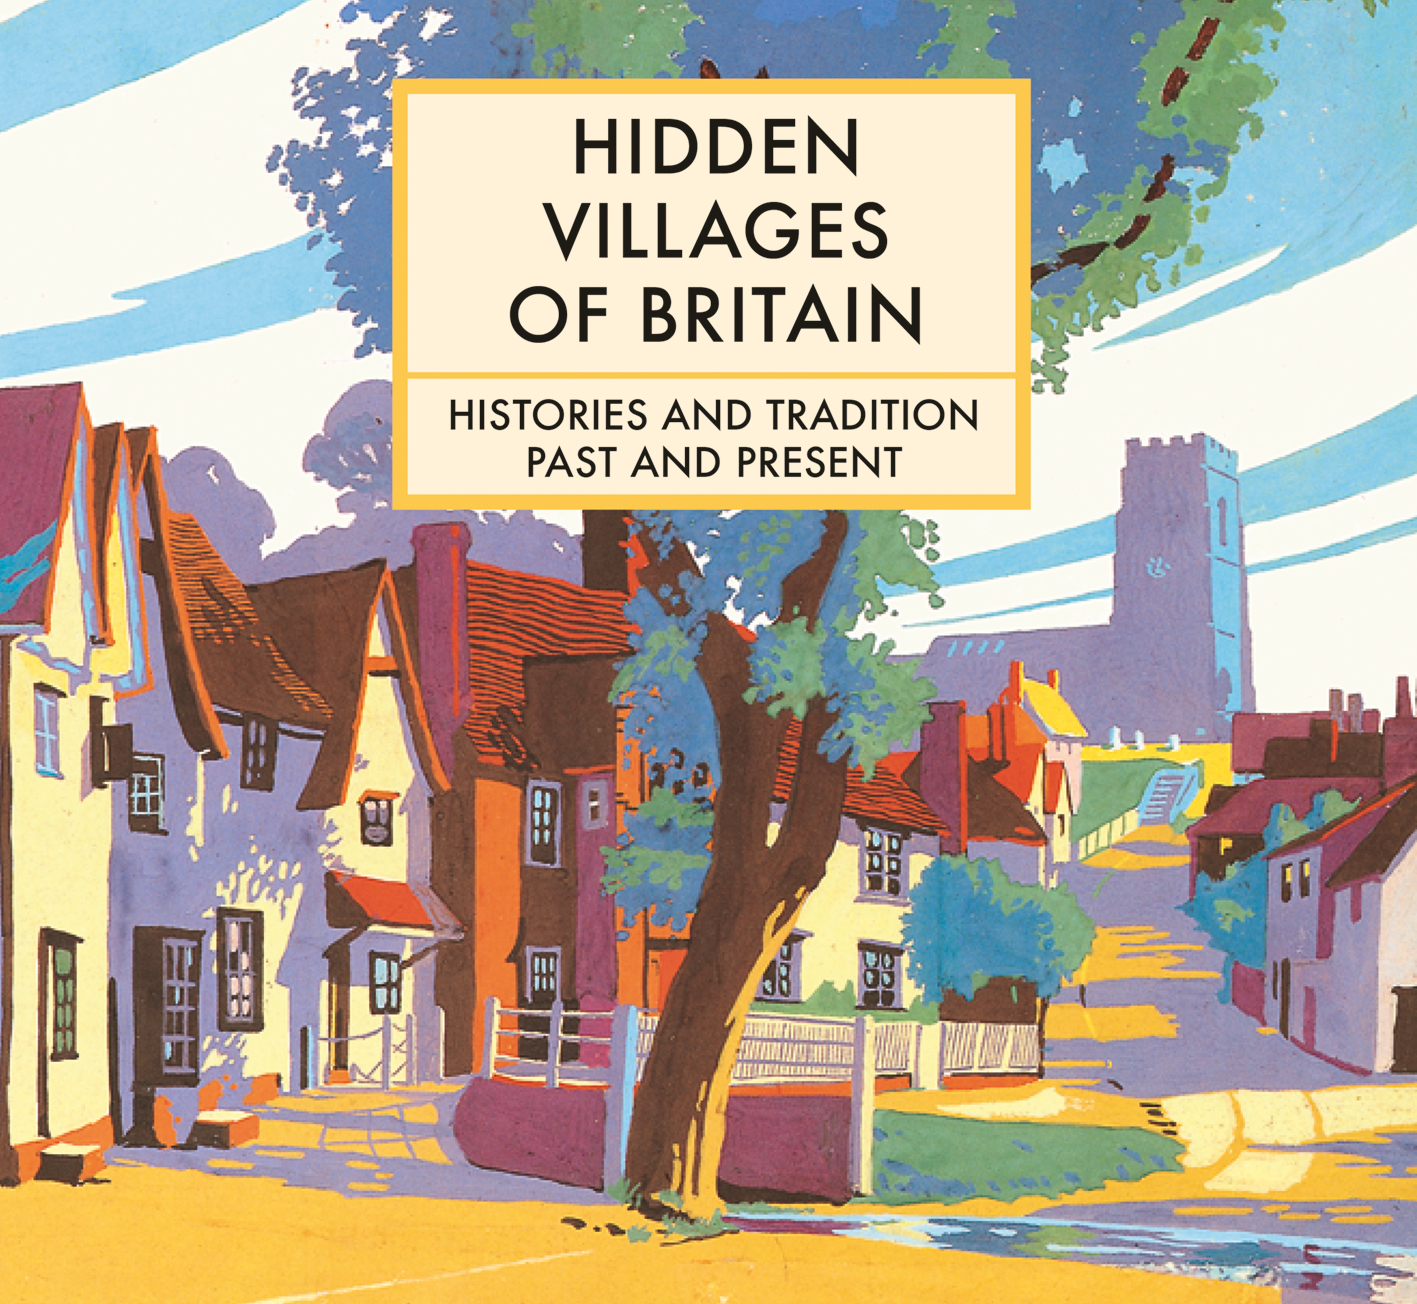 Hidden Villages of Britain